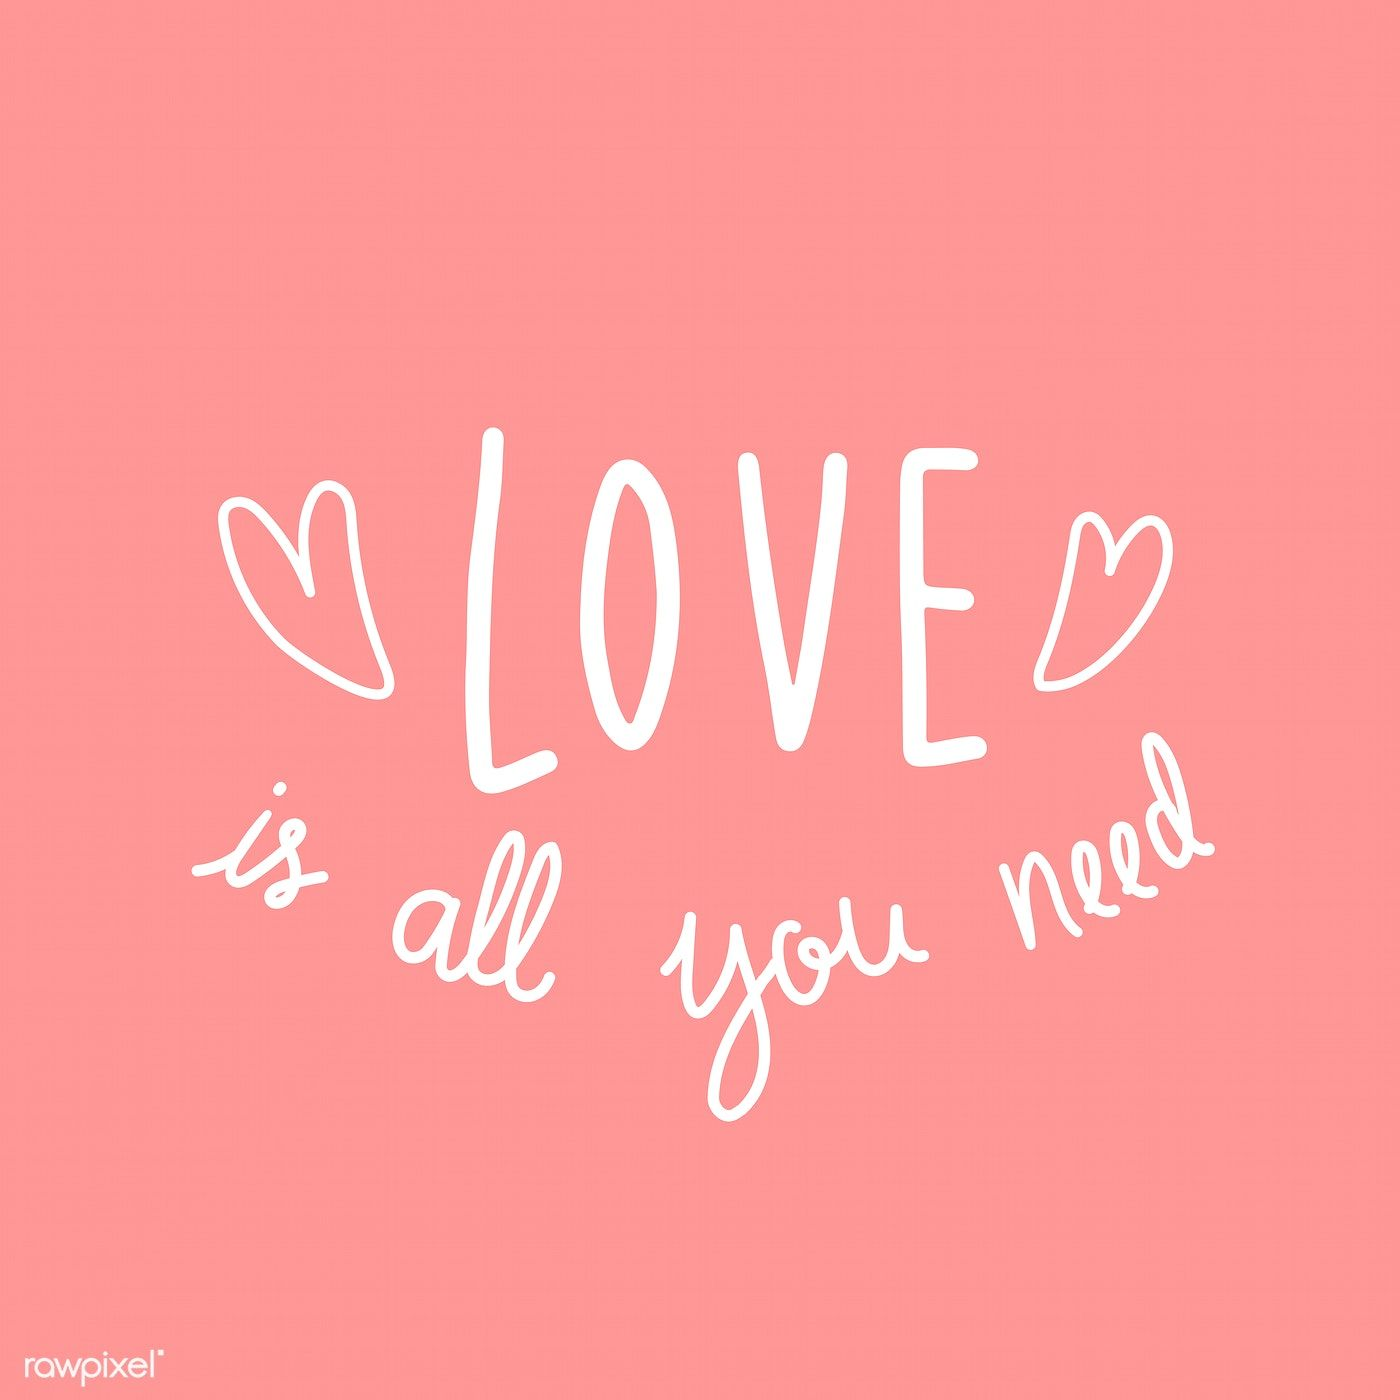 Download Love is all you need vector | free image by rawpixel.com / Aum